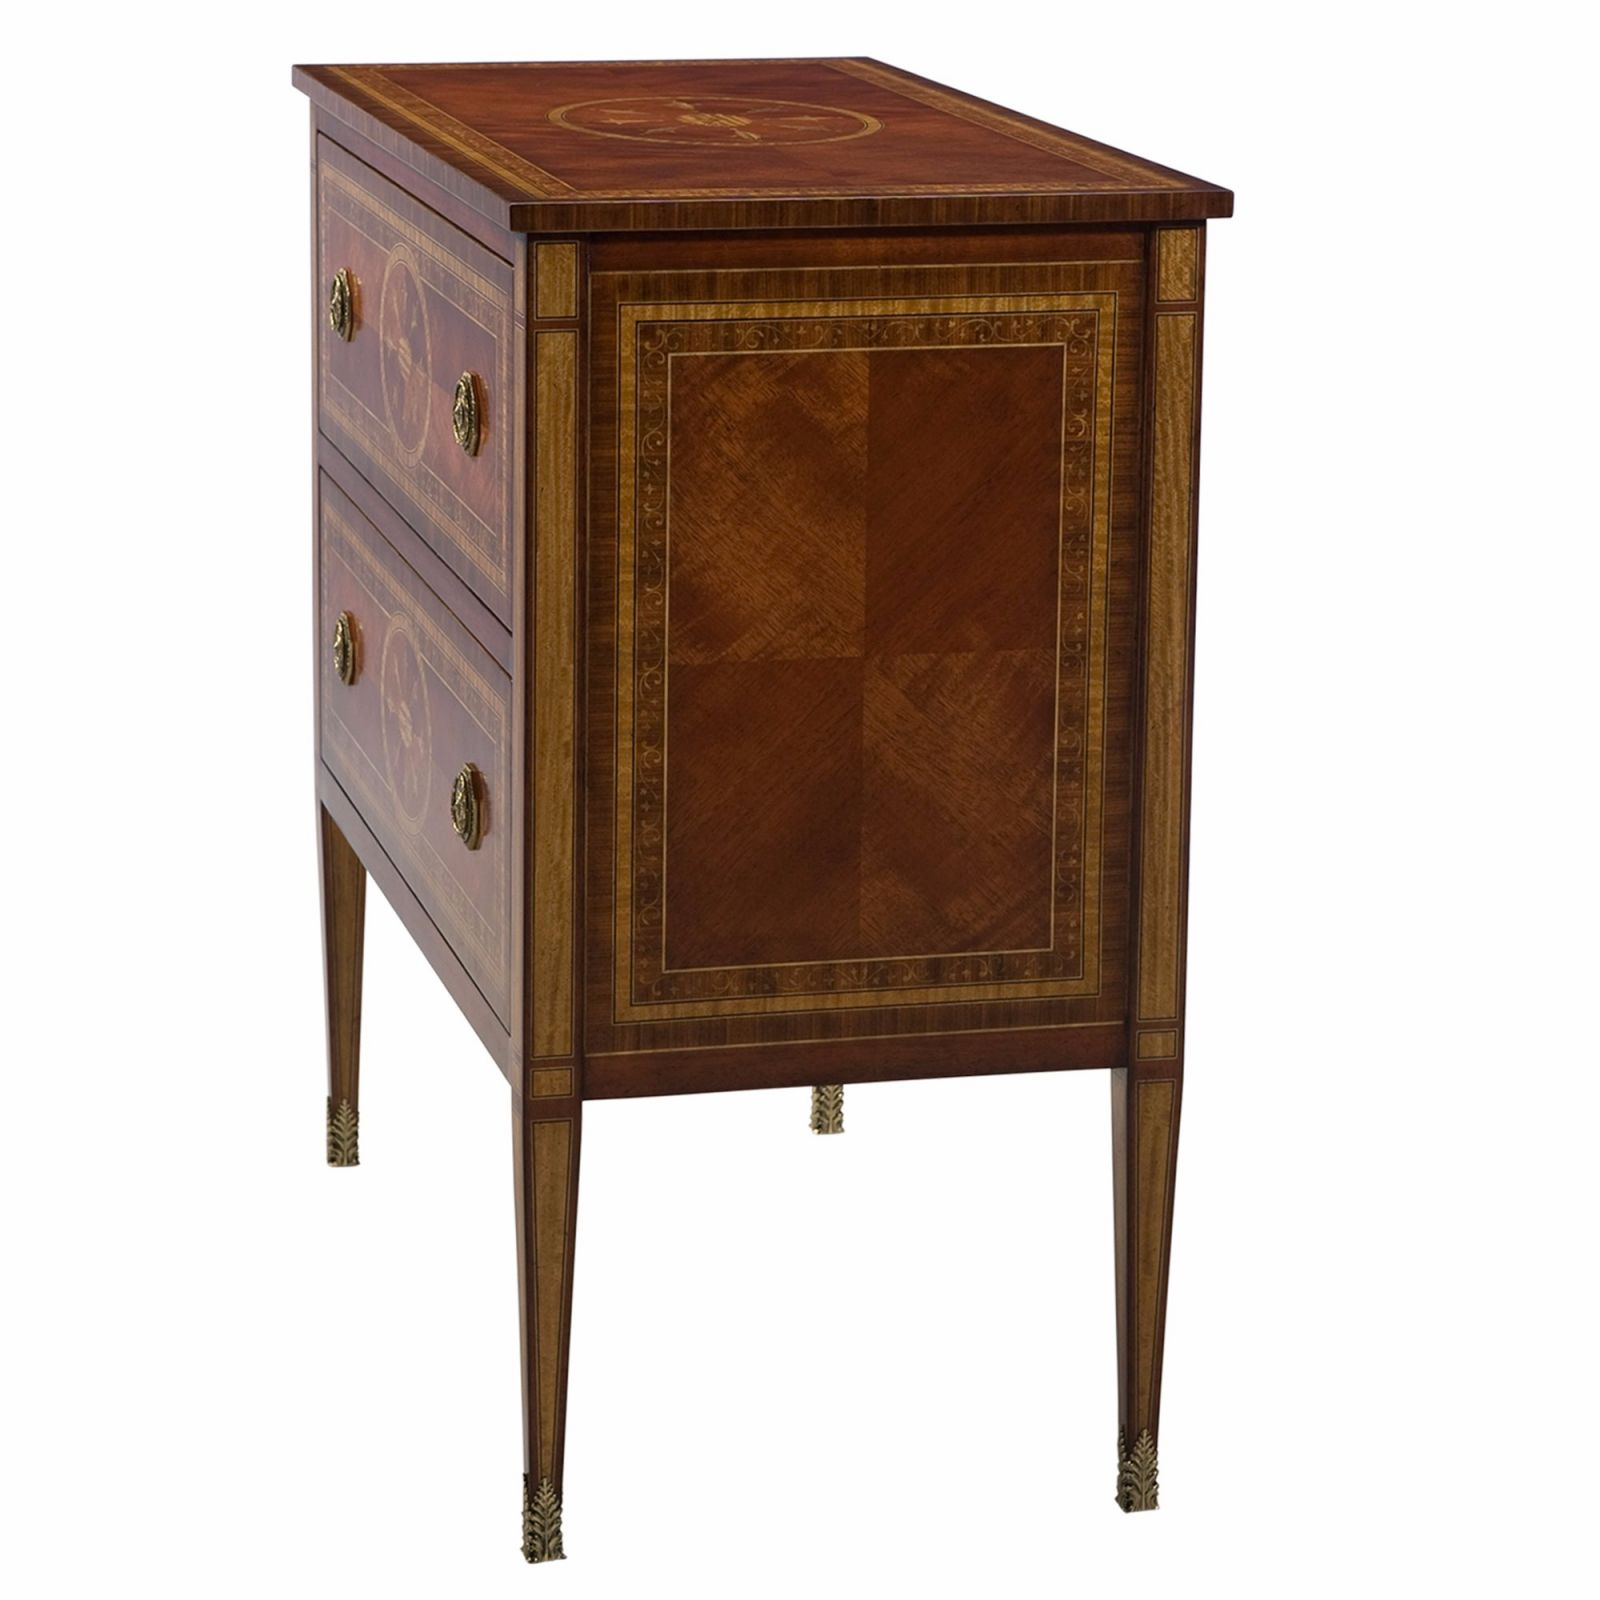 Santo Domingo rosewood chest of drawers